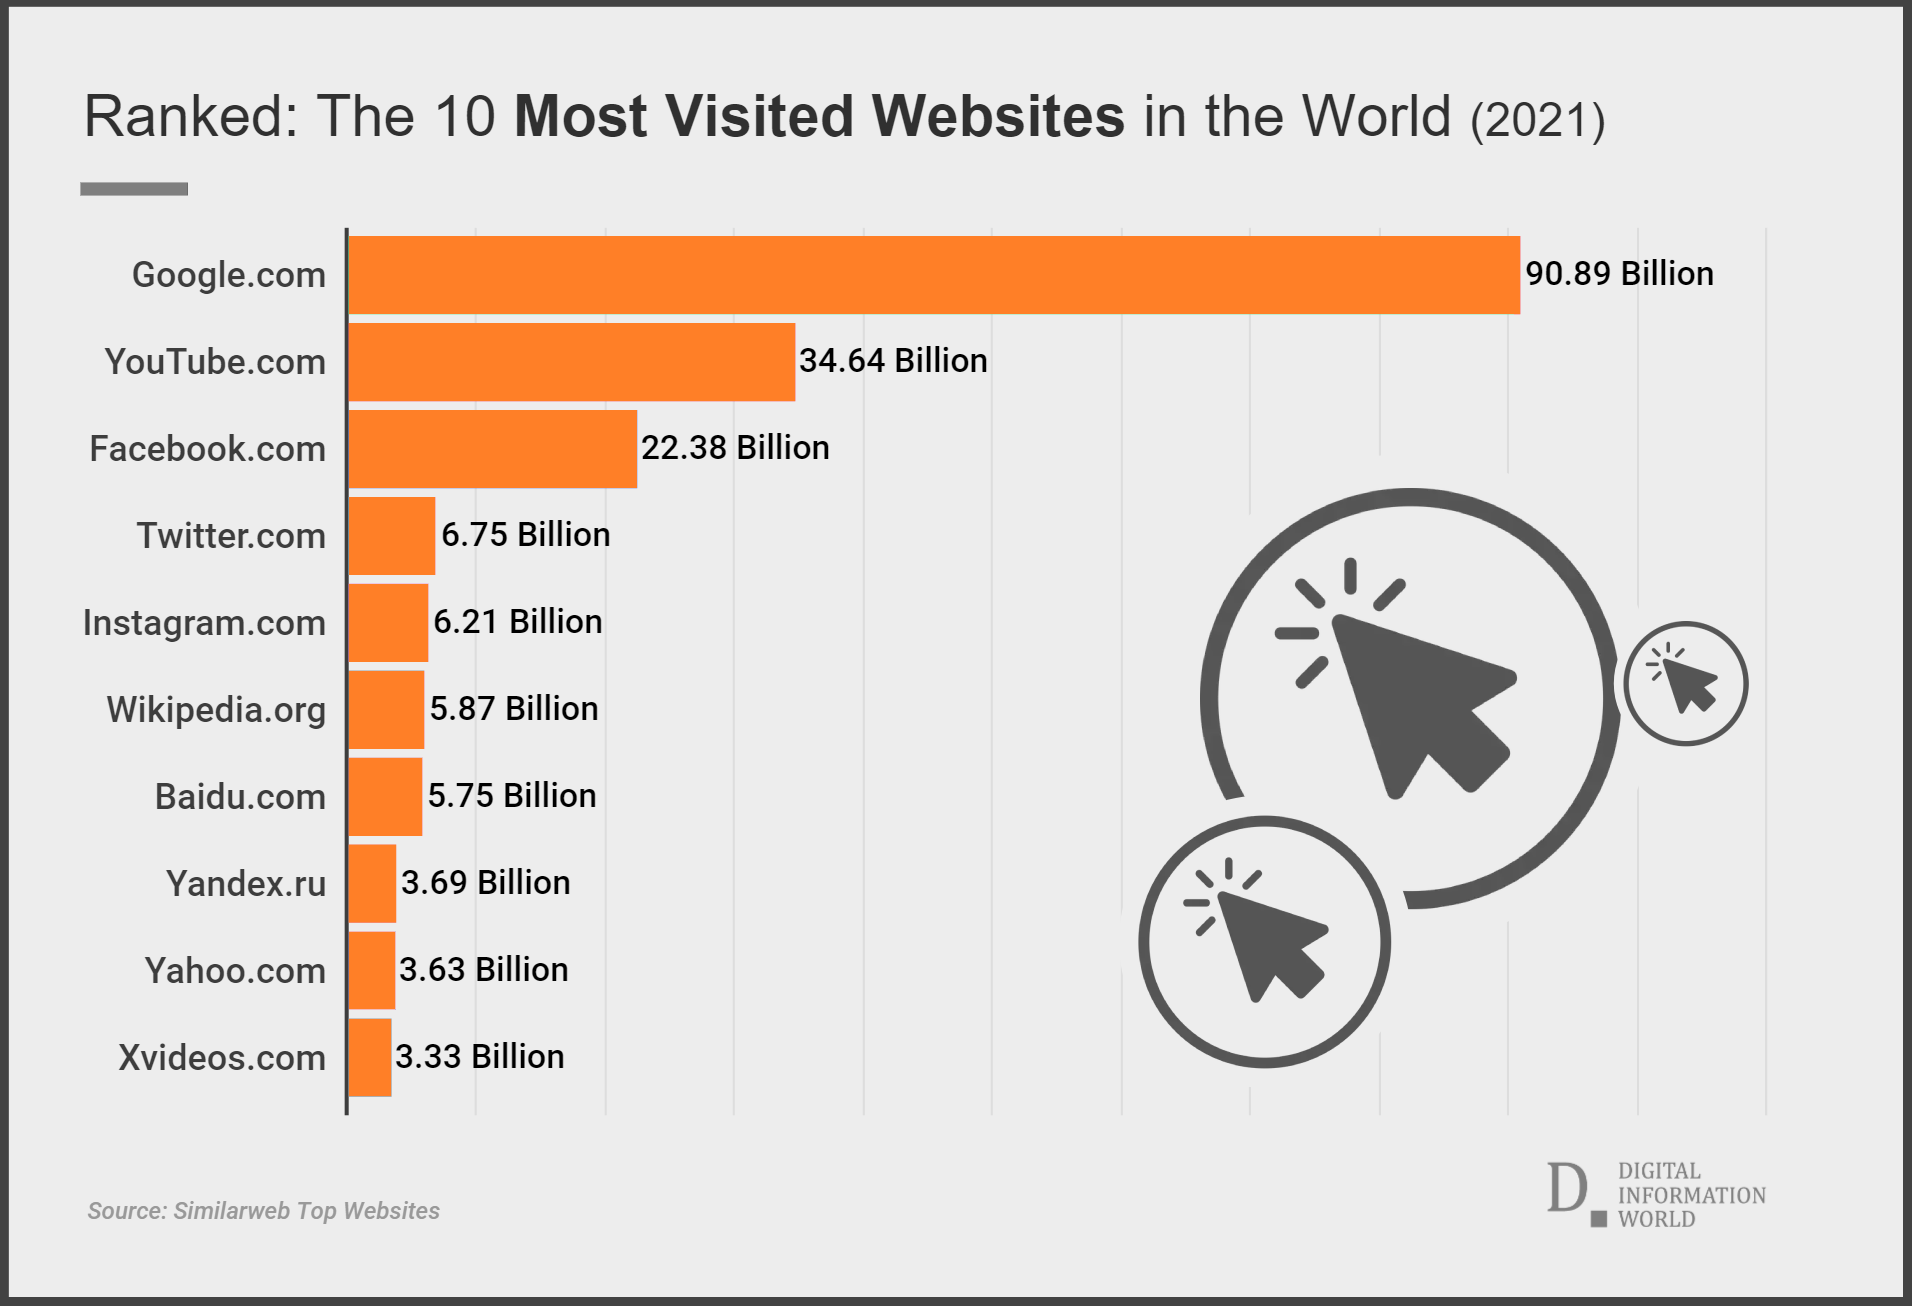 Ranked: The 10 Most Visited Websites in the World